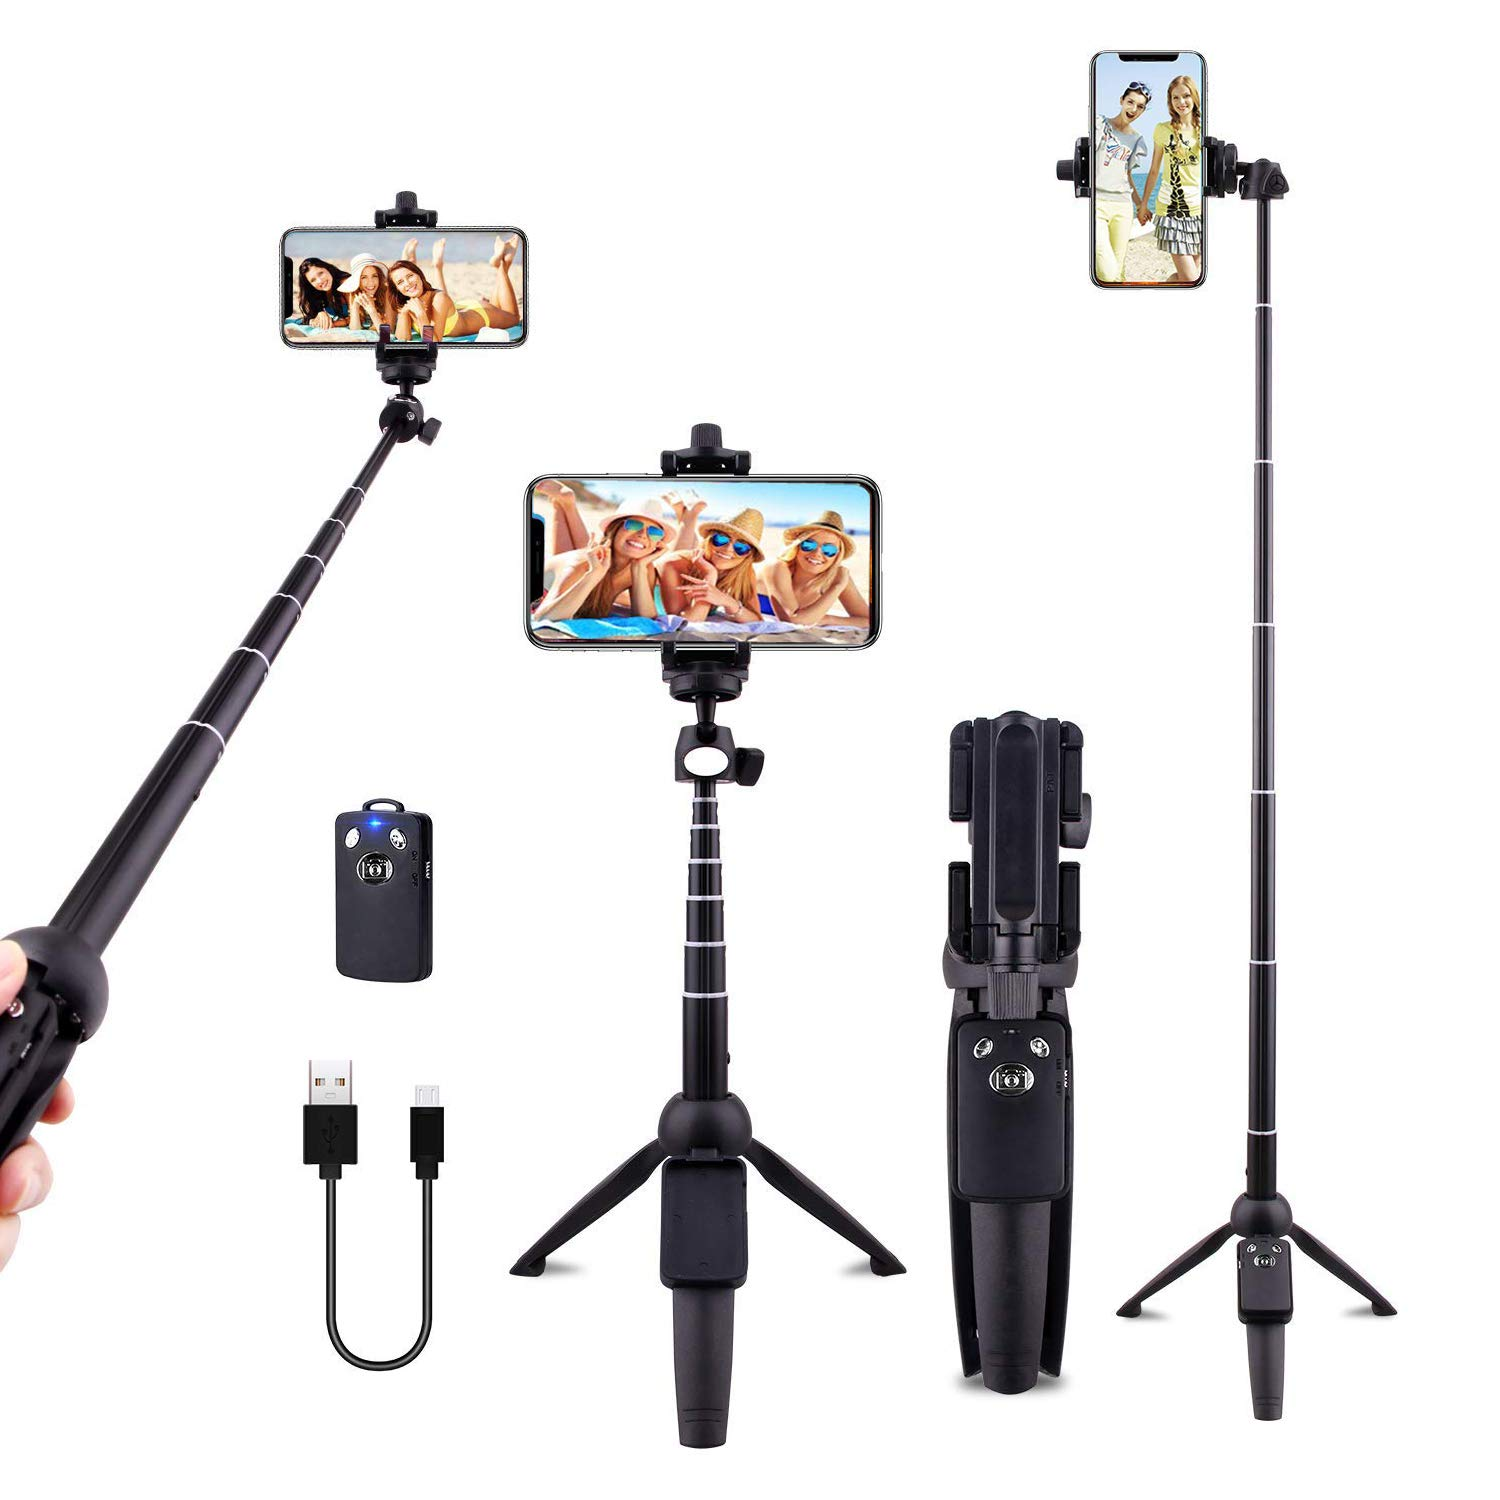 Selfie Stick Tripod Cell Phone Tripods 40 inch Bluetooth with Wireless Remote Shutter Compatible with iPhone X/8/8P/7/7P/6s/6P,Galaxy S9/S9 Plus/S8/S7/ S6/S5/Note 8,Google and More